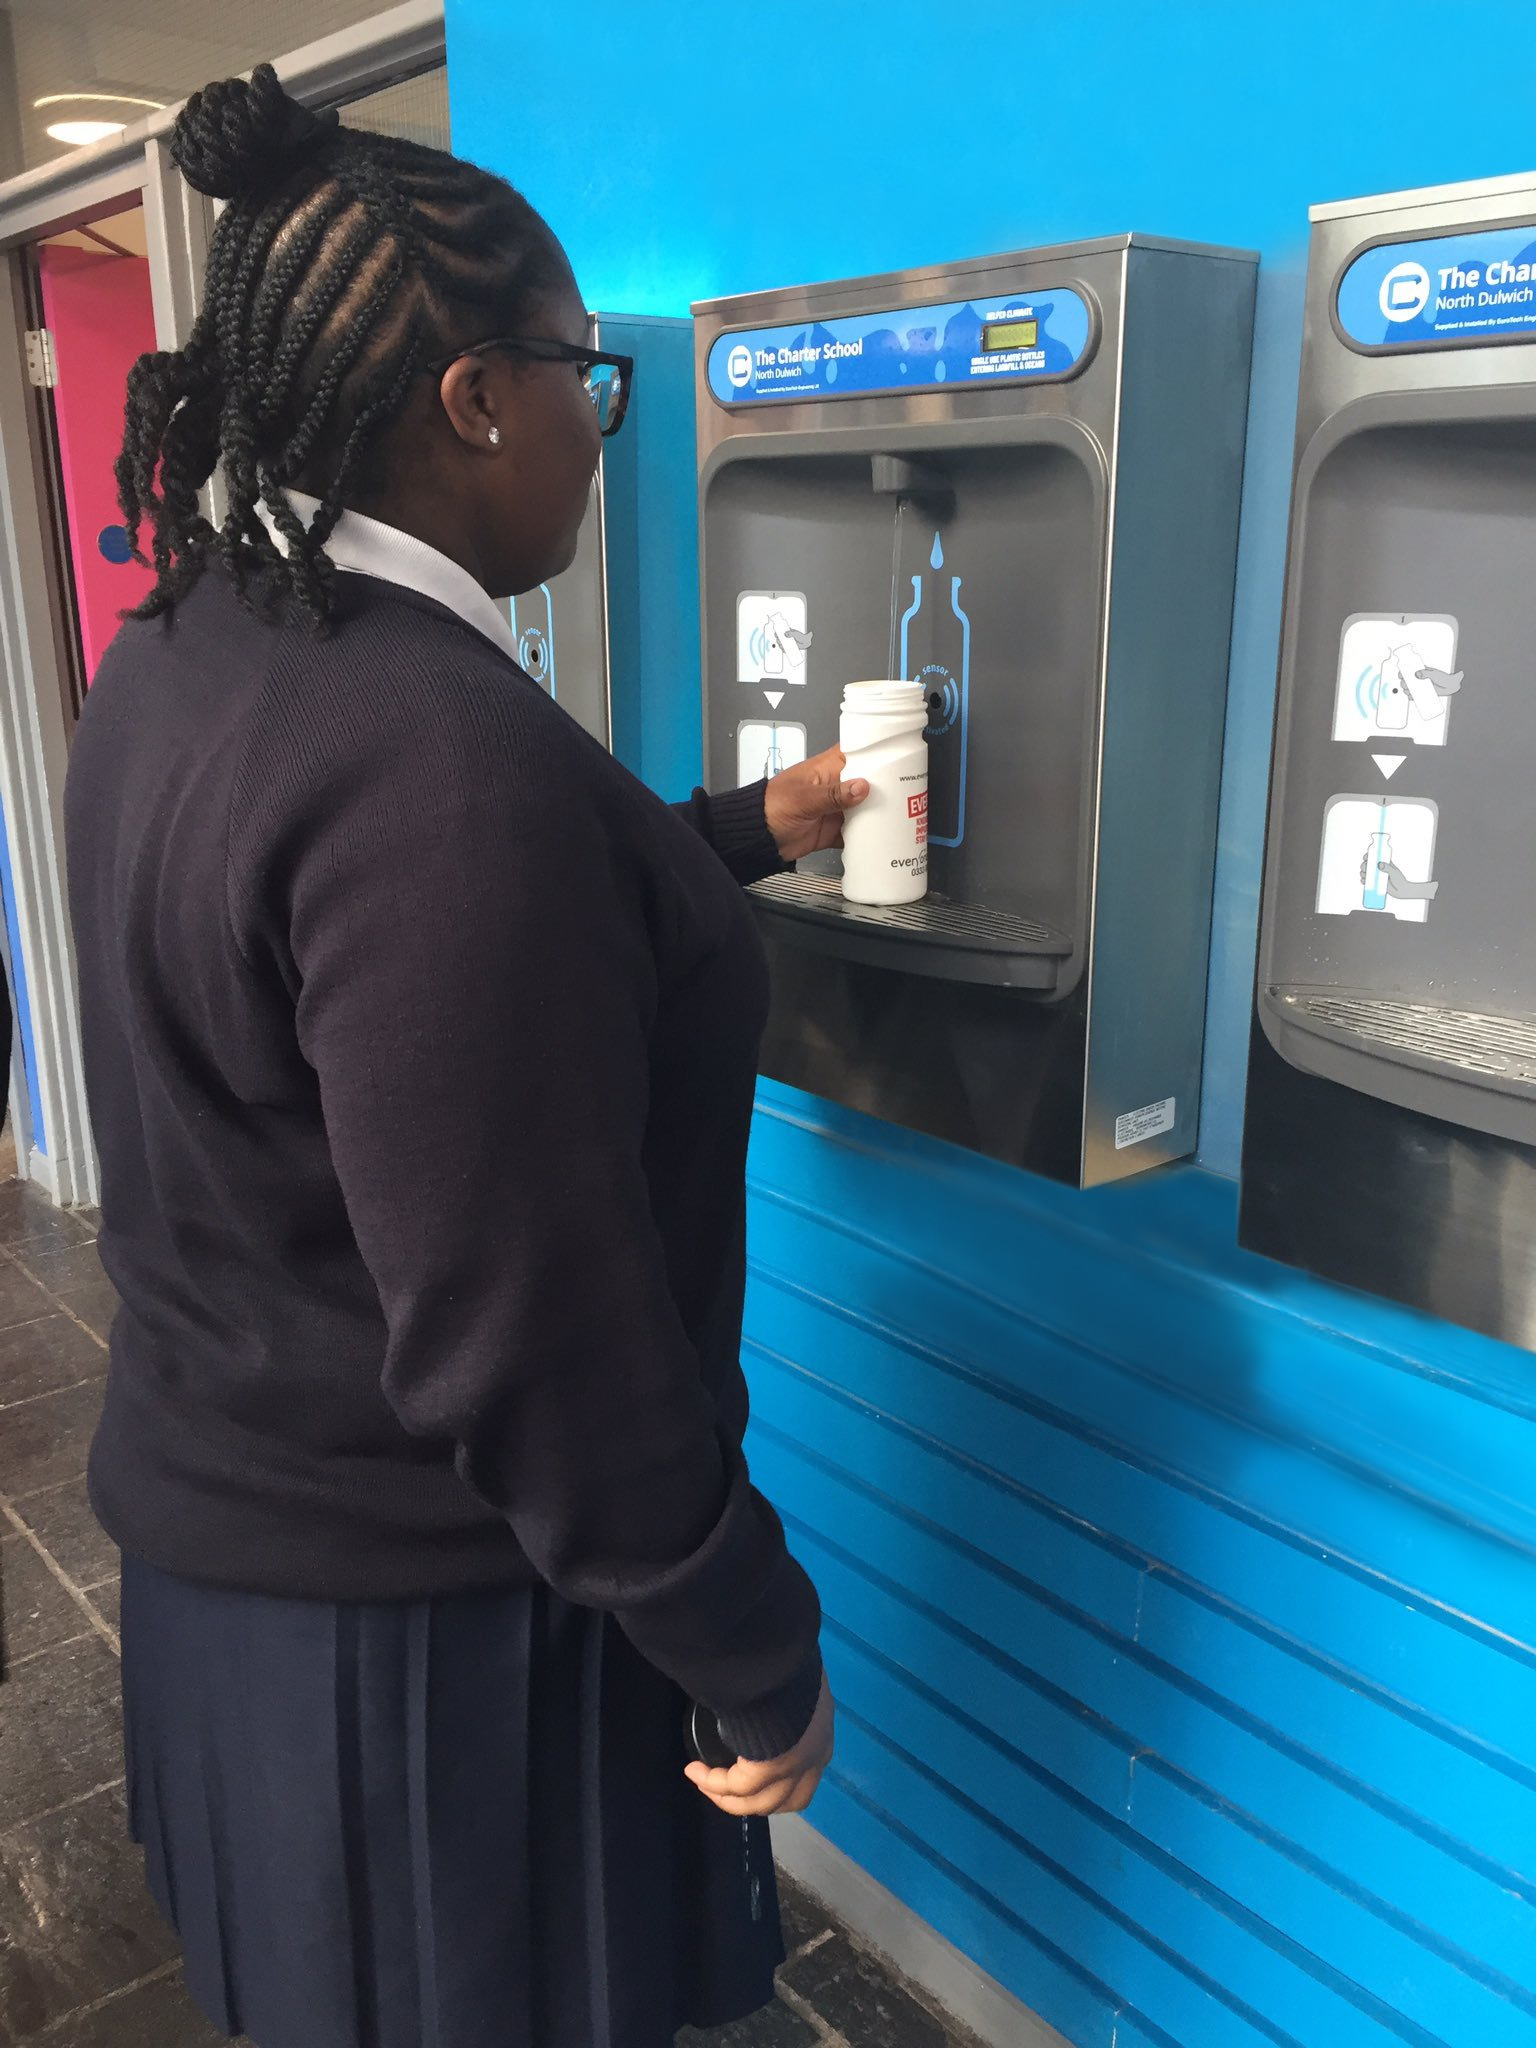 A Student Using Bottle Refill Station At The Charter School North Dulwich